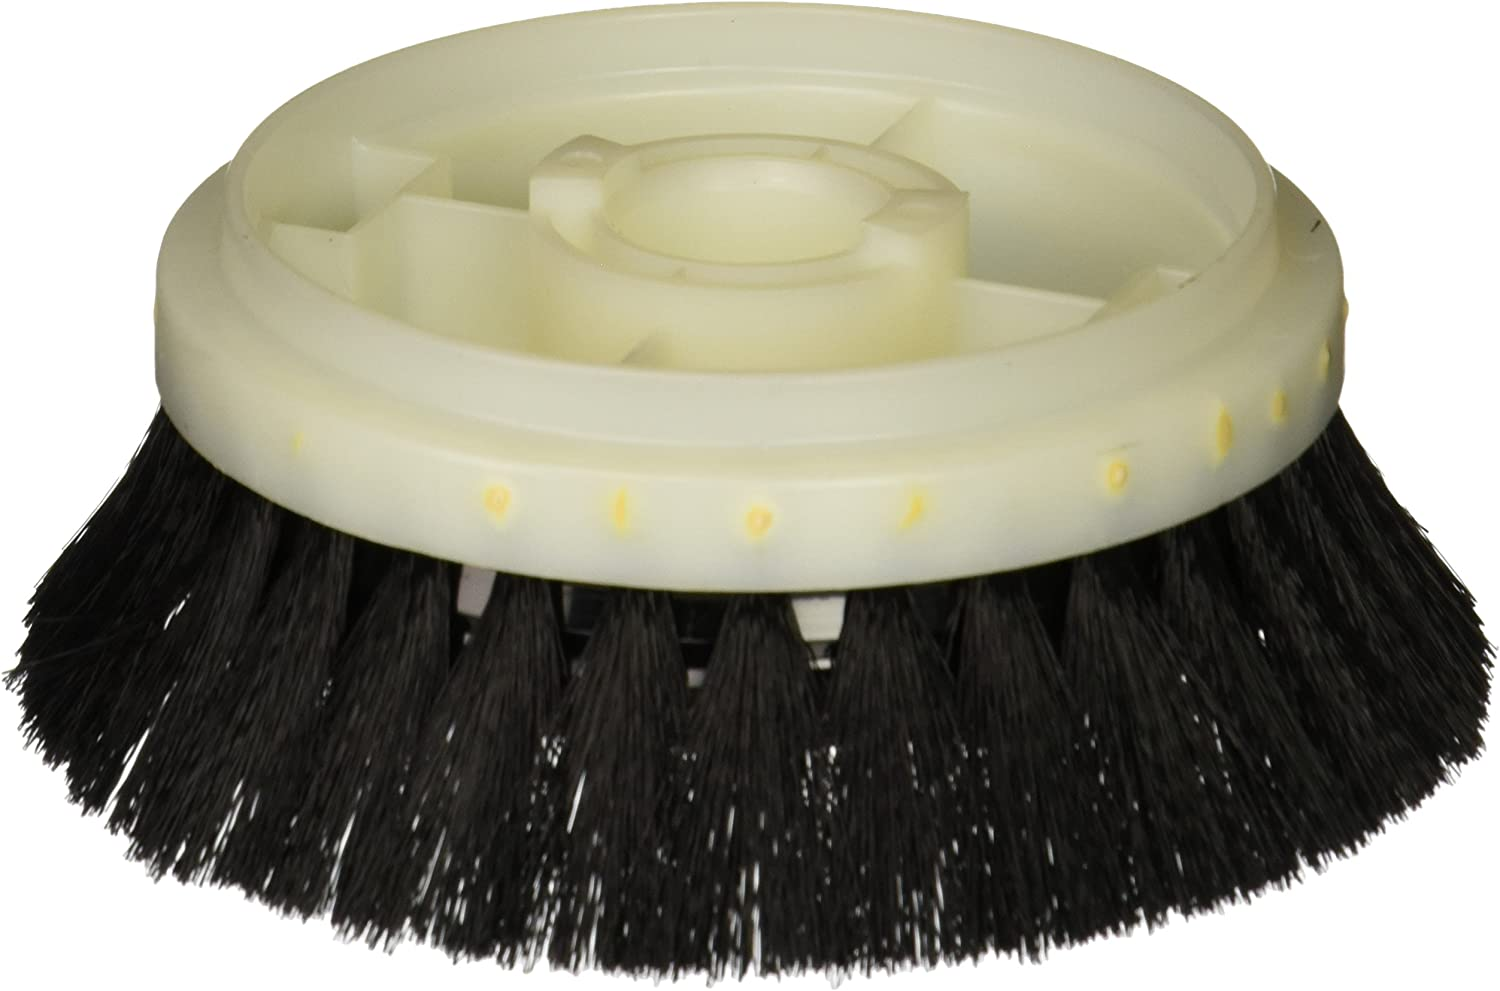 Hoover Brush, Shampoo Flair Bristle C/D